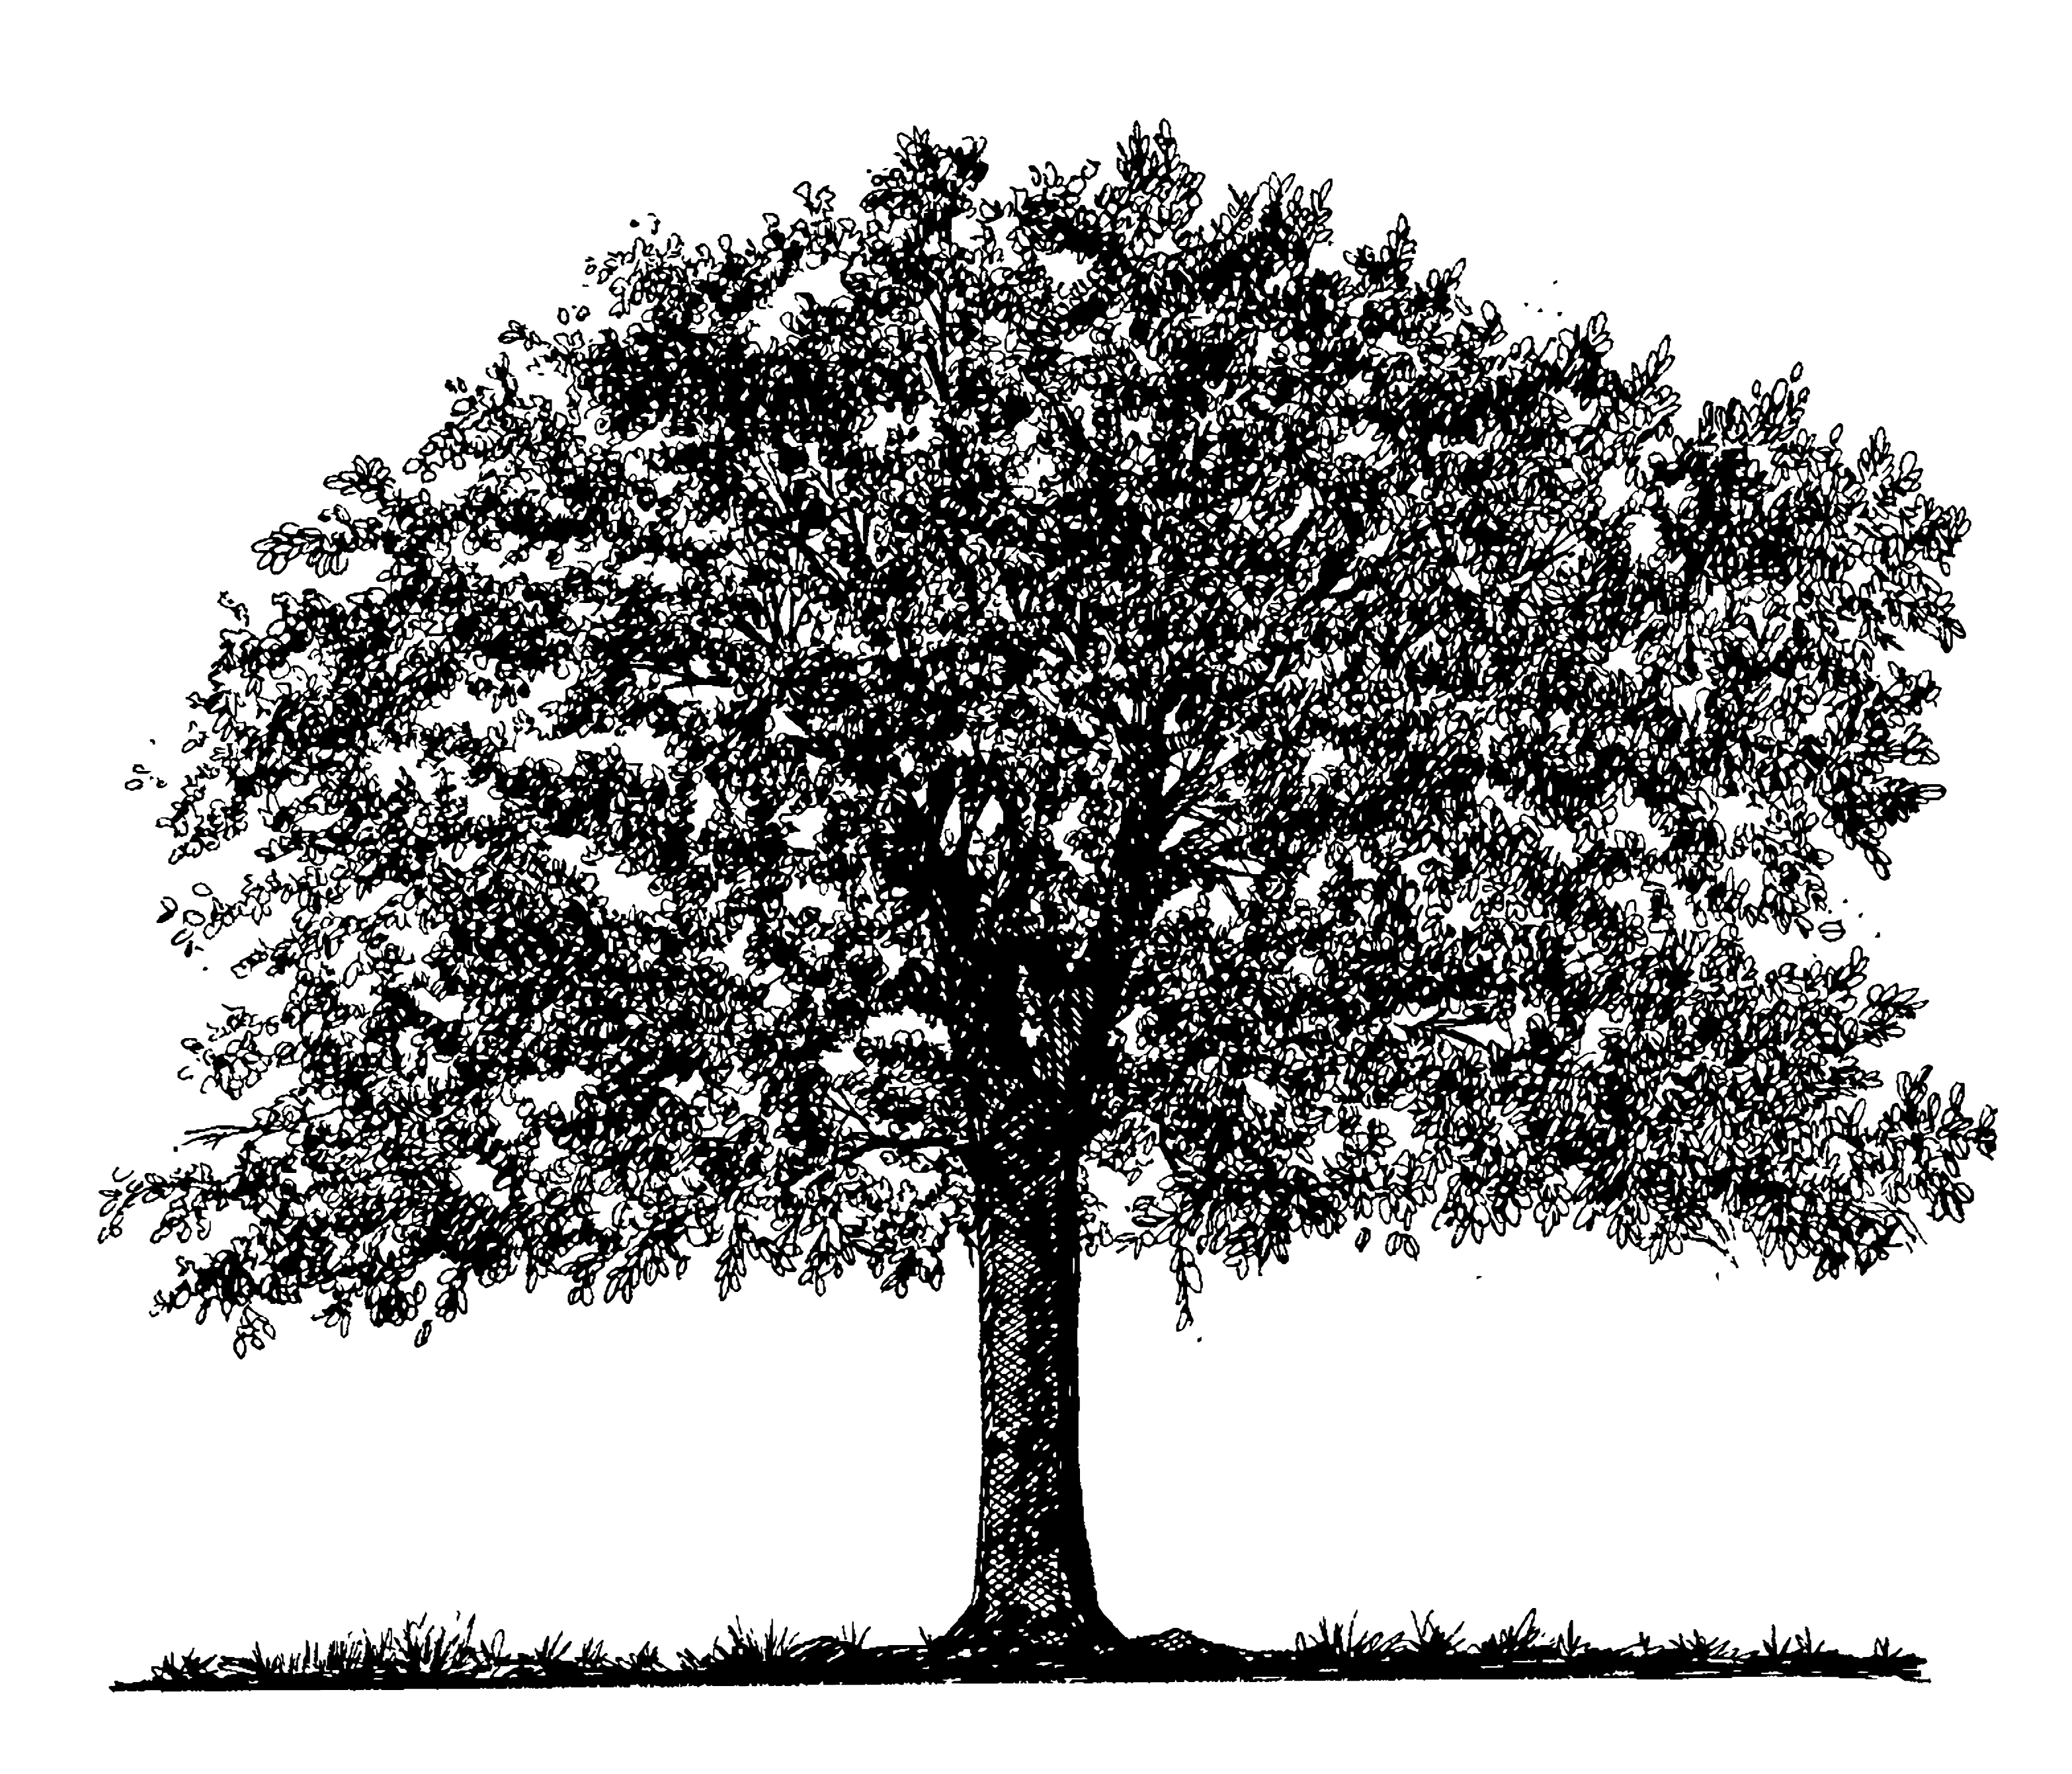 Line Drawing Images Of Trees : Tree drawings cliparts